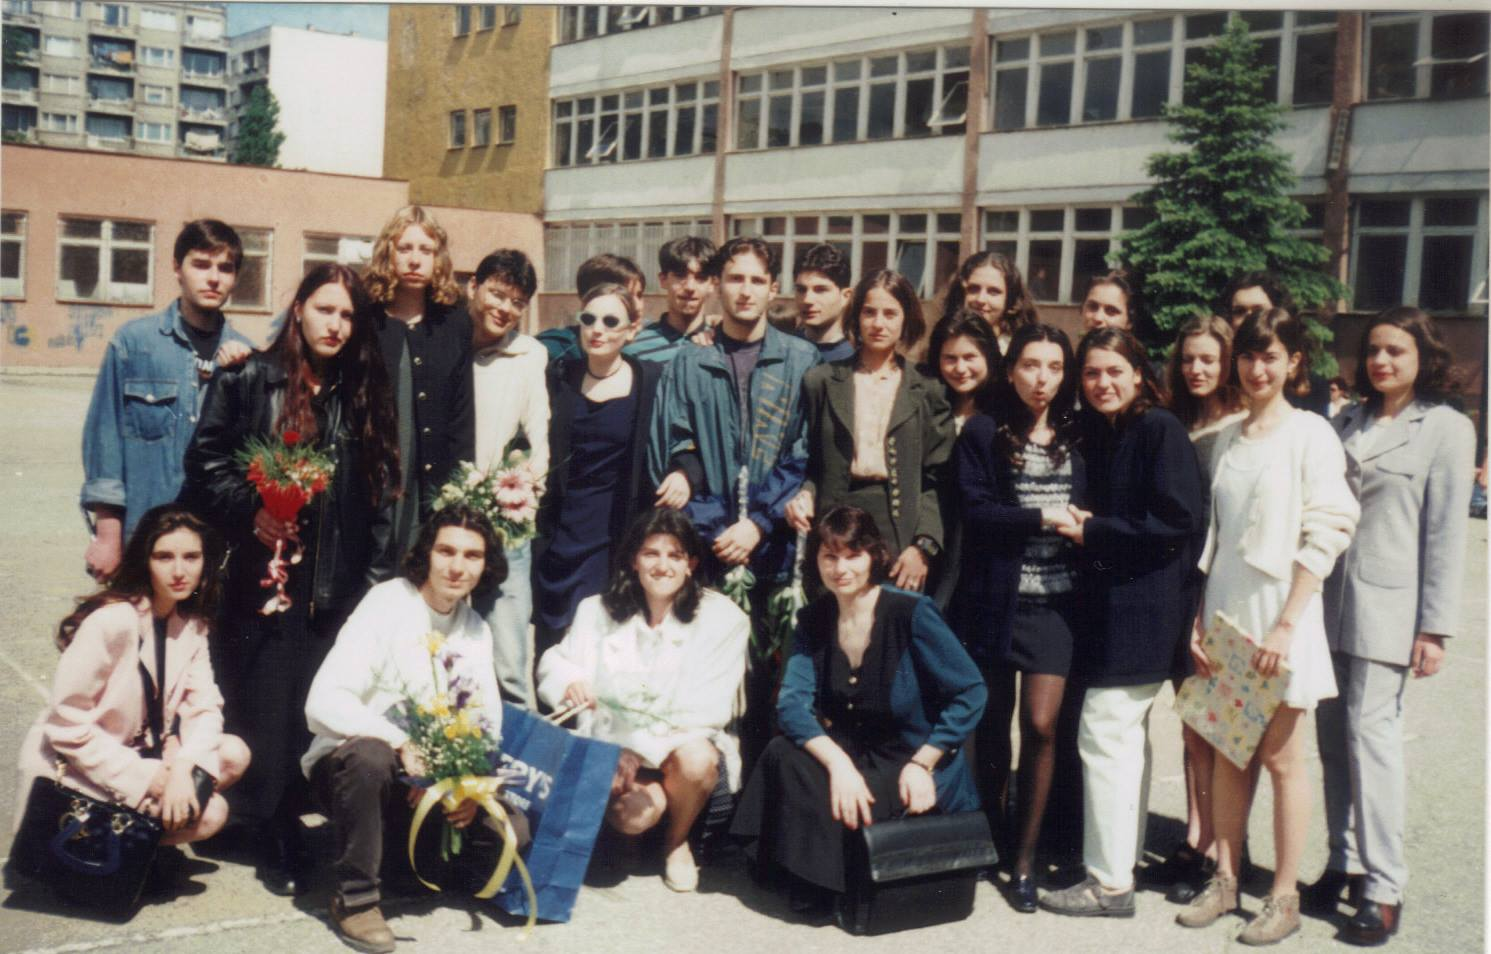 Chalkbeat Chicago reporter Mila Koumpilova (pictured second from right in a white dress) at age 18 with her class in front of her high school in Sofia, Bulgaria.